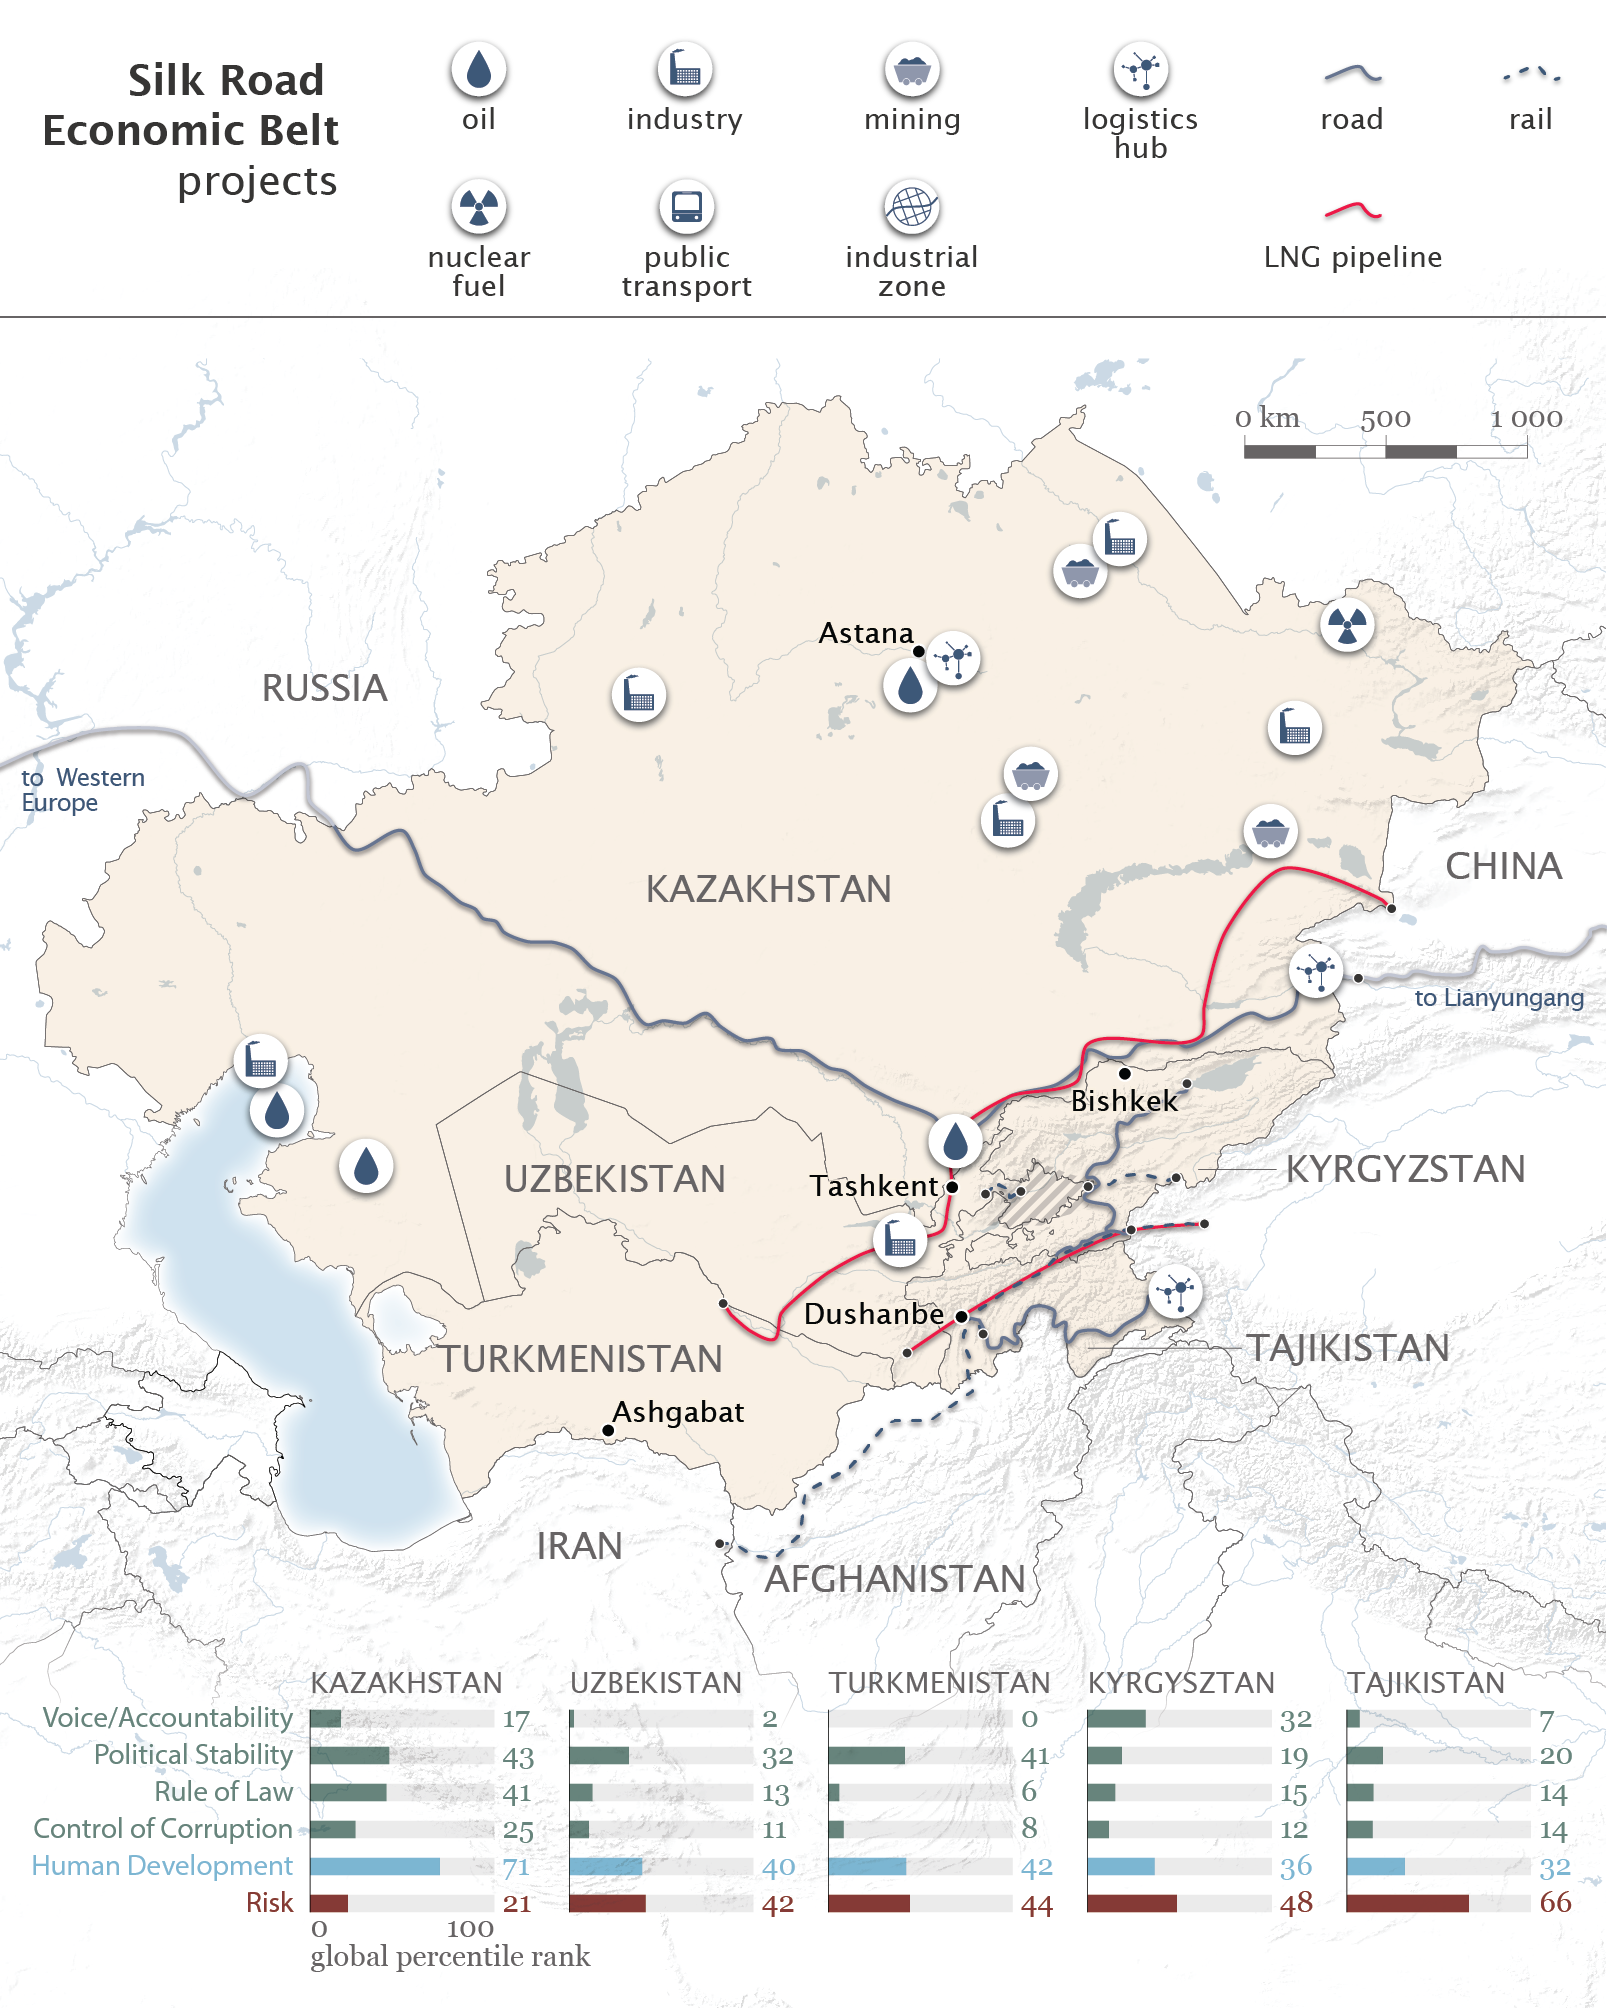 Map of Central Asia illustrating Silk Road Economic Belt projects and fragility indicators per state